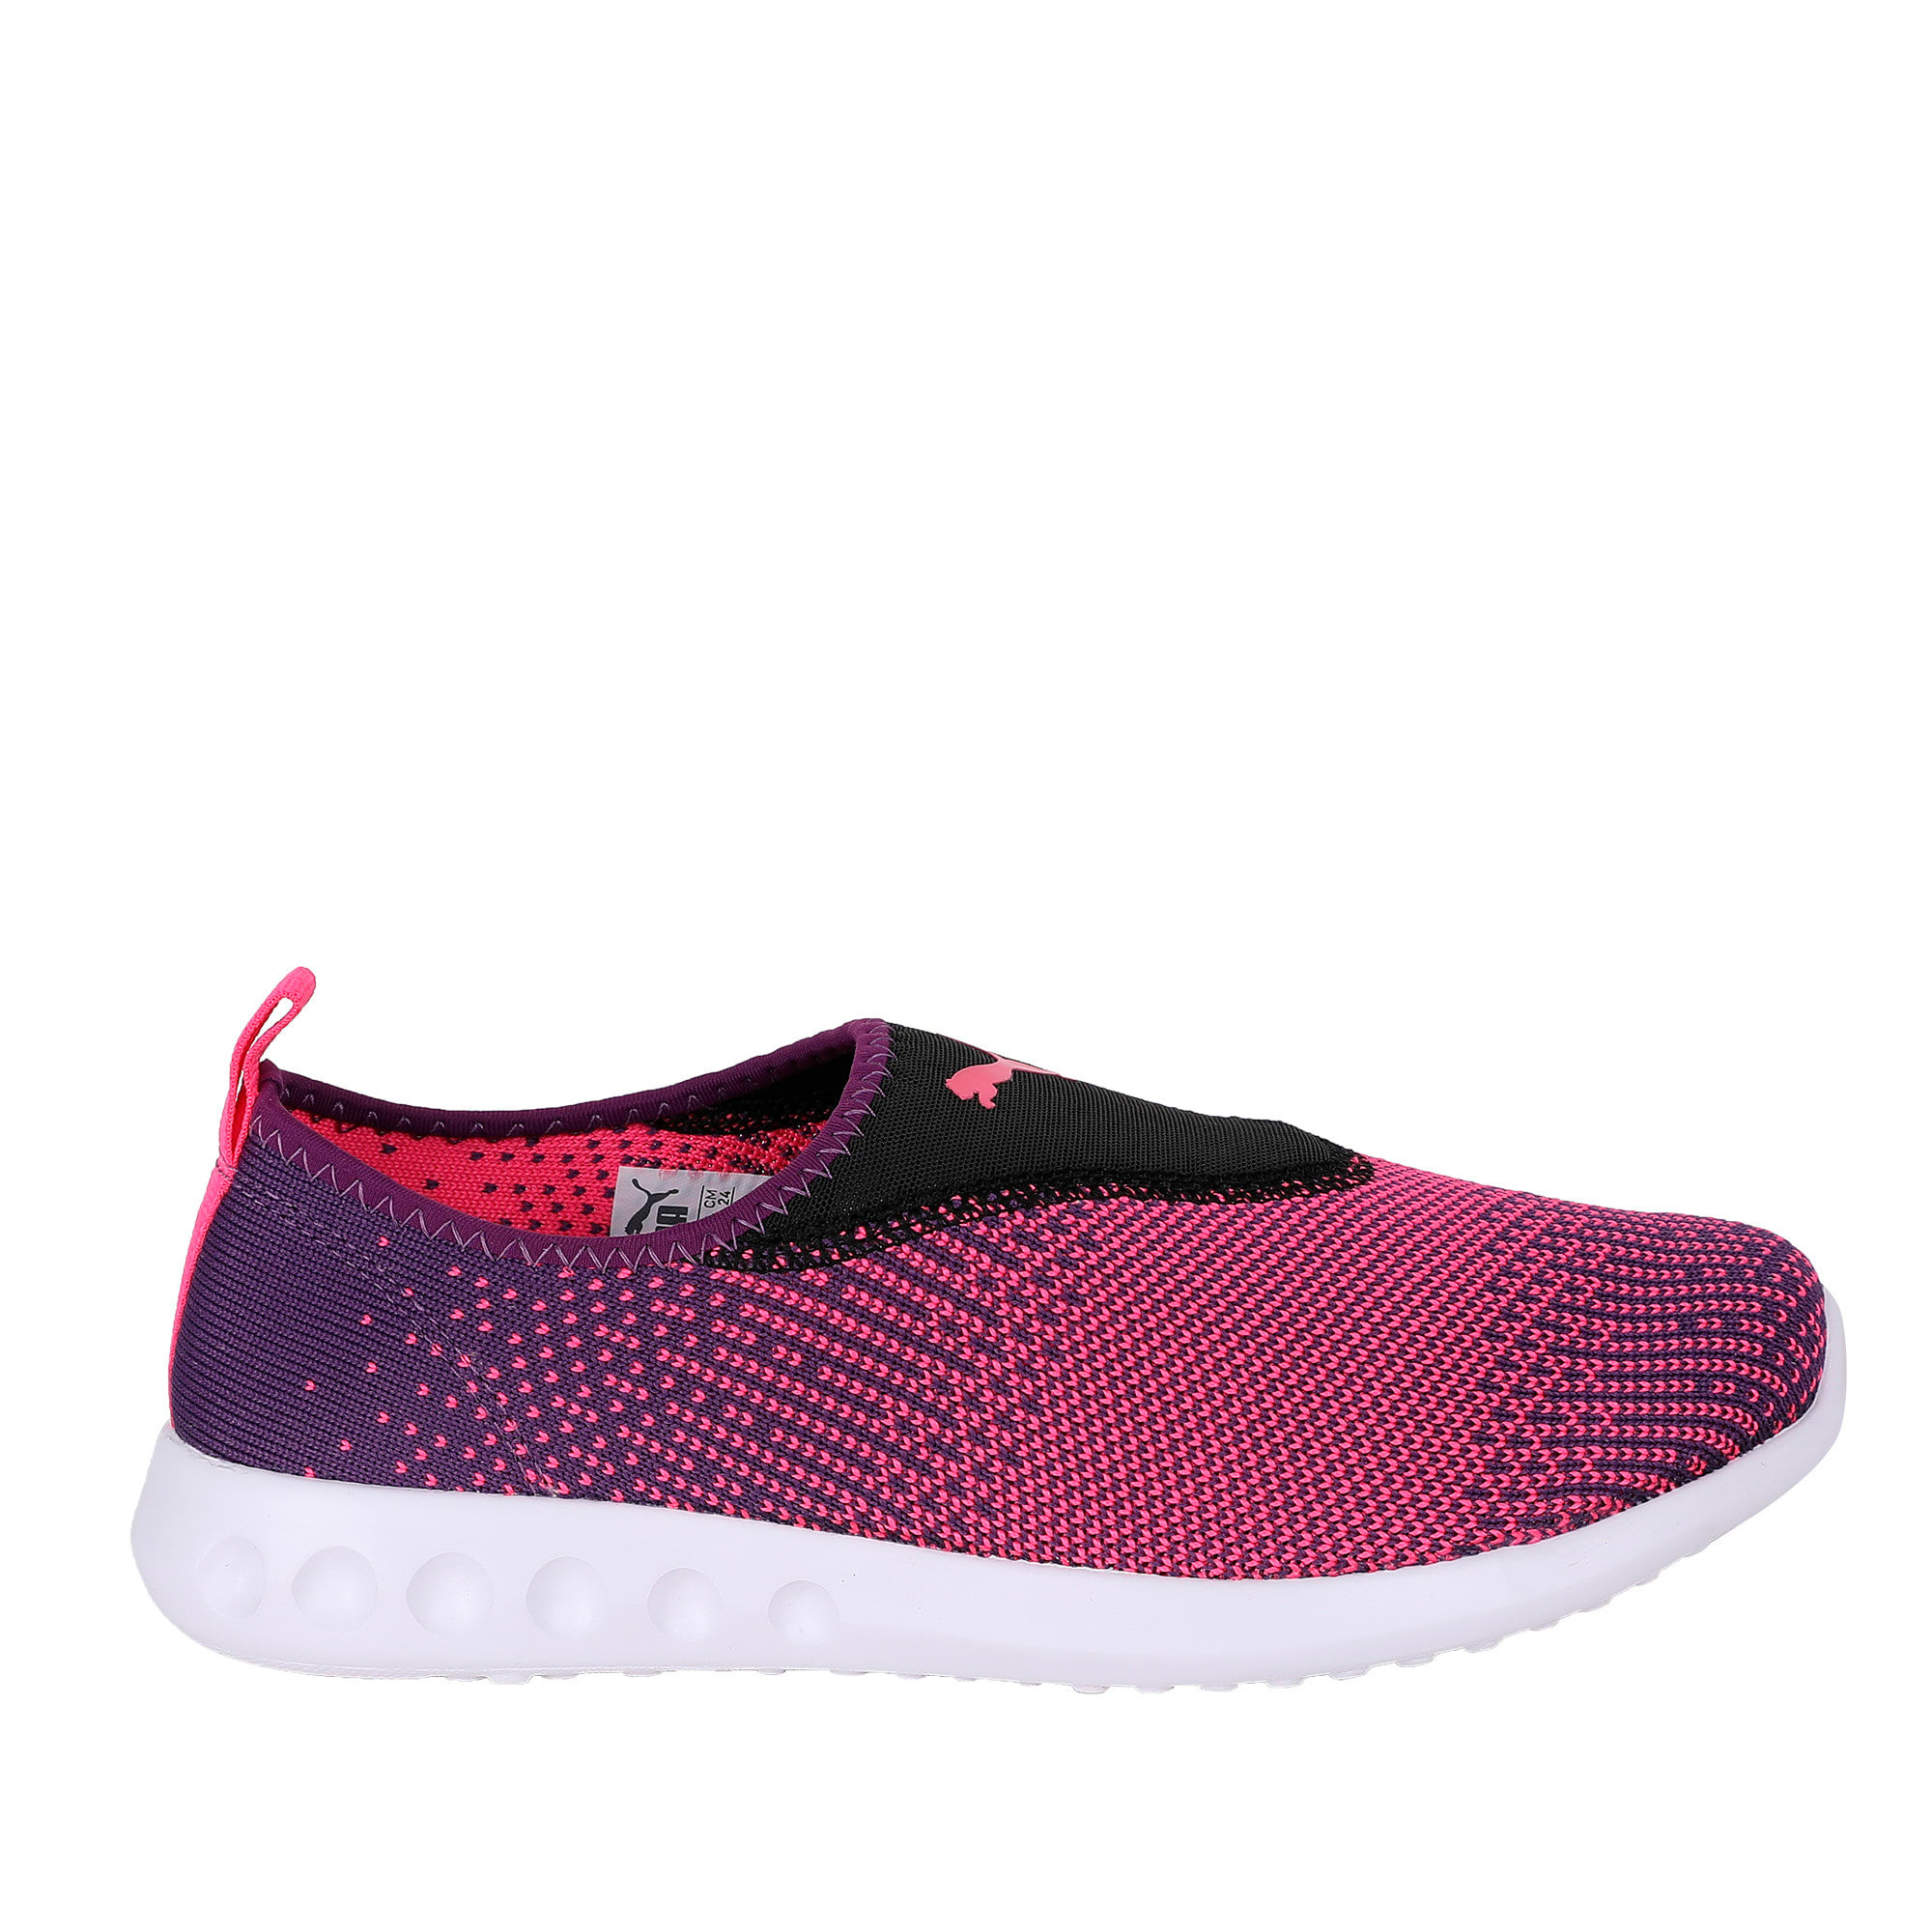 Thumbnail 4 of Carson 2 Slip-On Wn s IDP, Majesty-KO PINK-Puma White, medium-IND